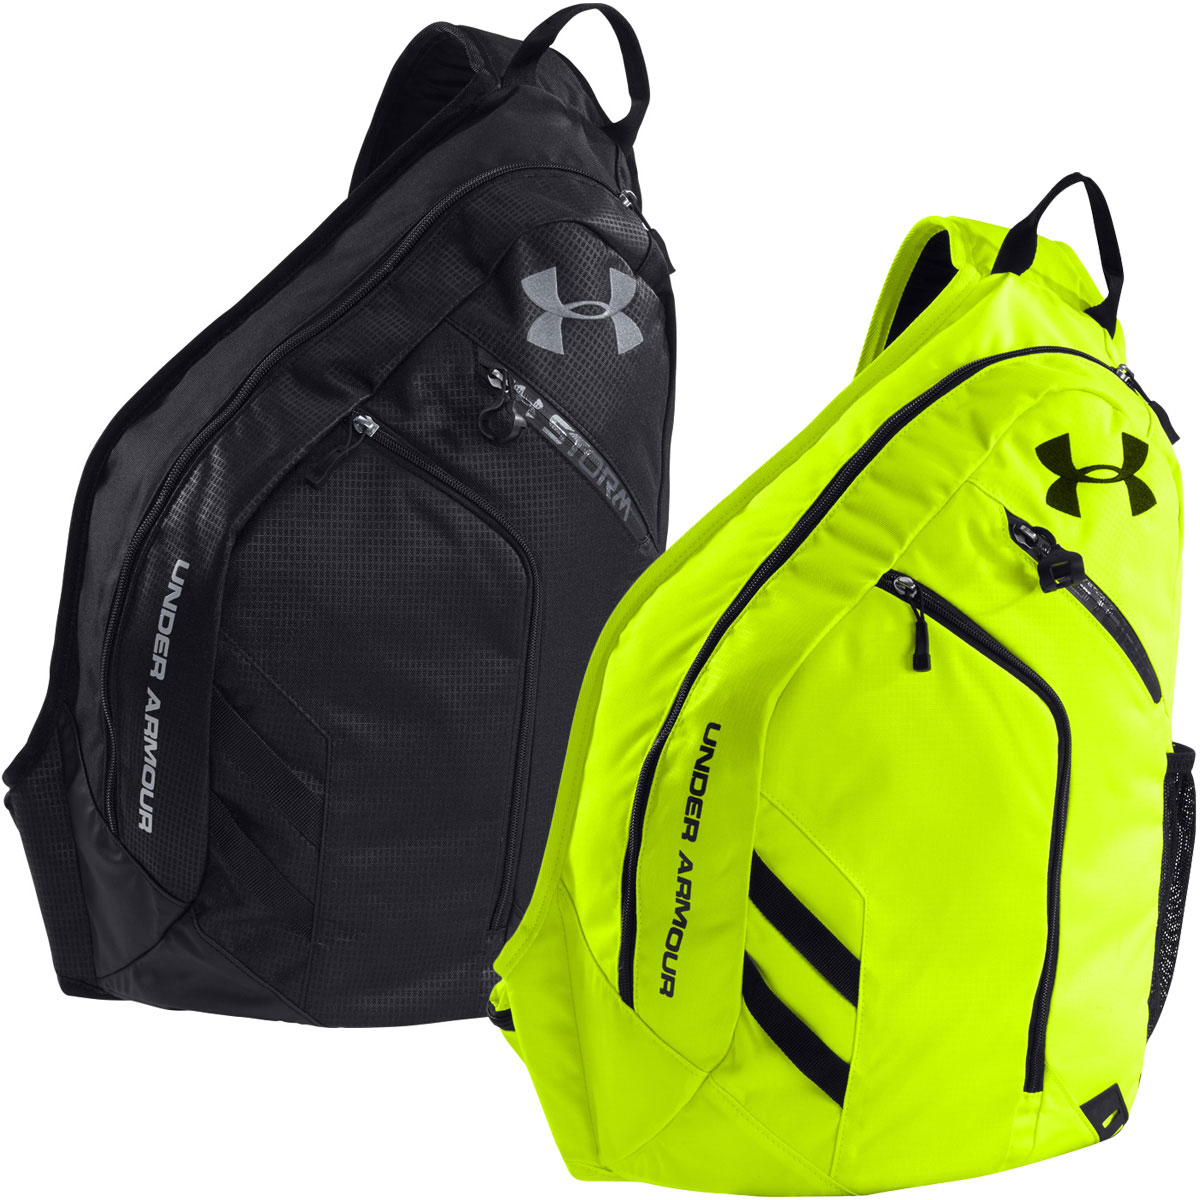 f51ef269a207 under armor sling backpack cheap   OFF62% The Largest Catalog Discounts